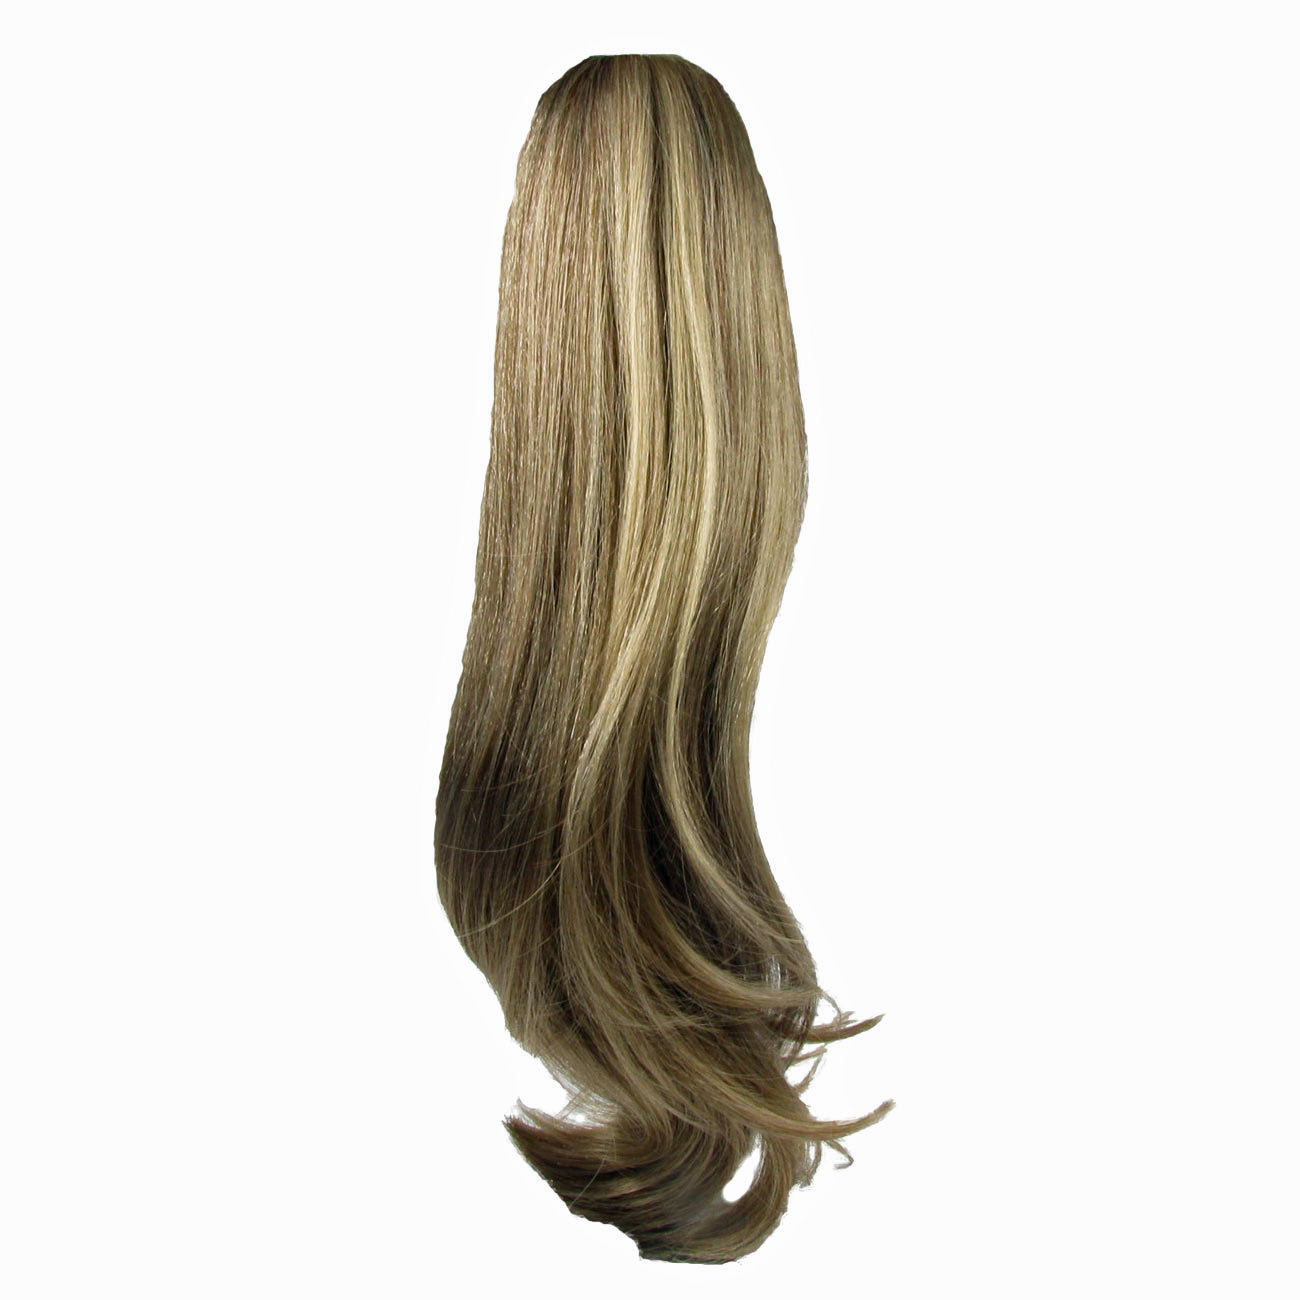 Stupendous Clip In Ponytail Hair Piece Extensions Long Curly Wavy Stylish Hairstyles For Men Maxibearus